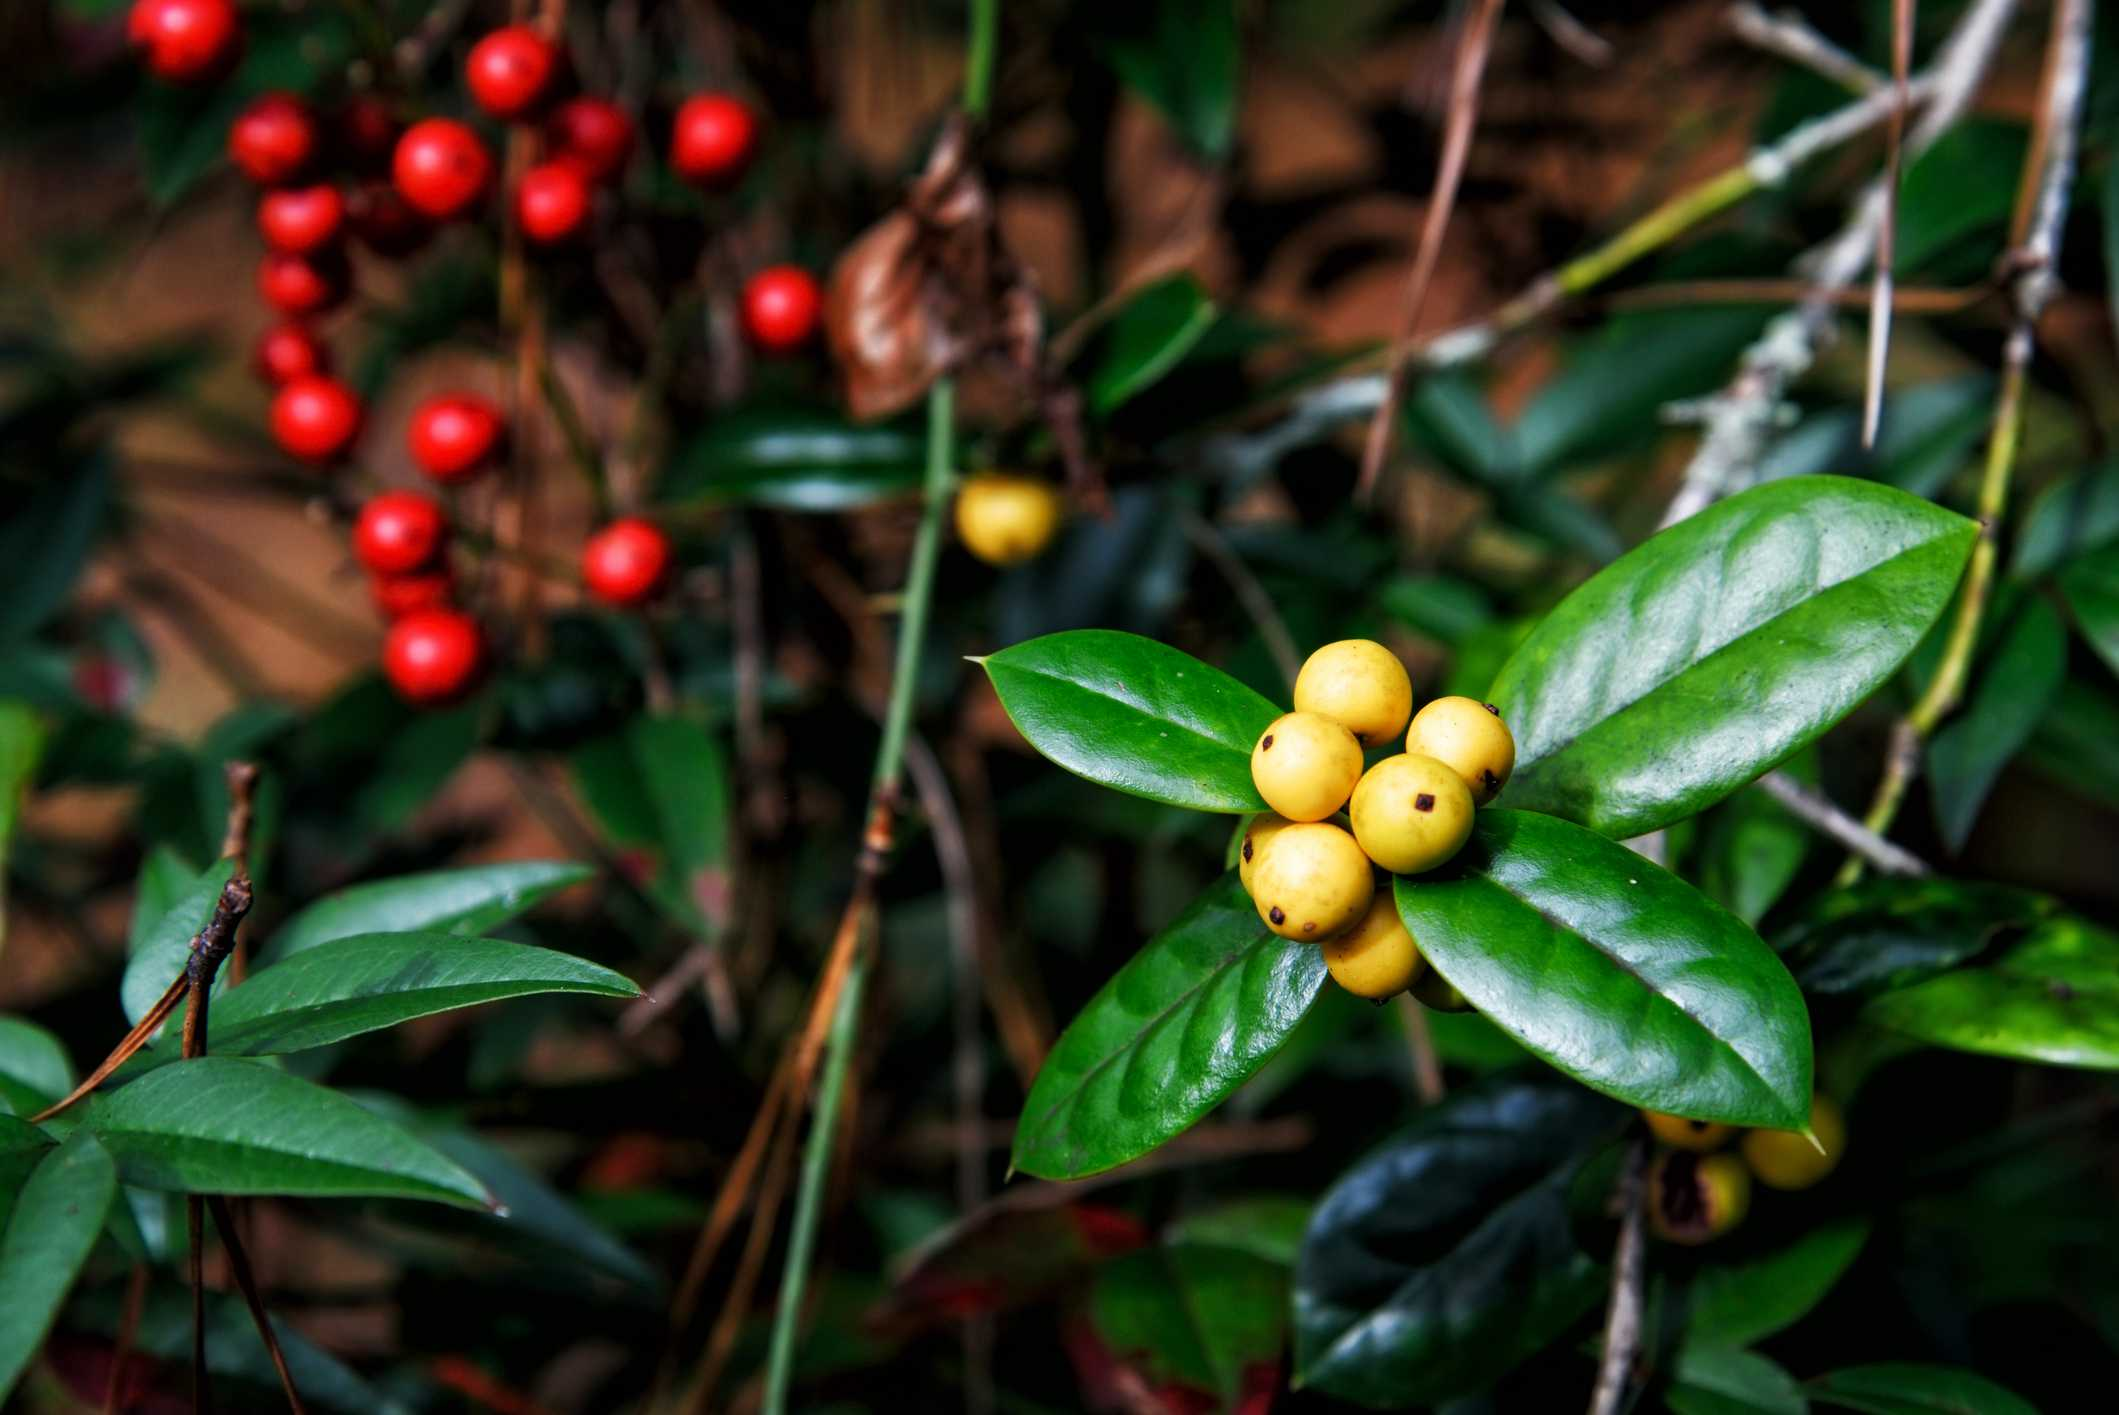 Yellow fruited holly berries with a defocused blurry background with red fruited hollies provide copy space. This image was shot at Callaway Gardens in Pine Mountain Georgia USA